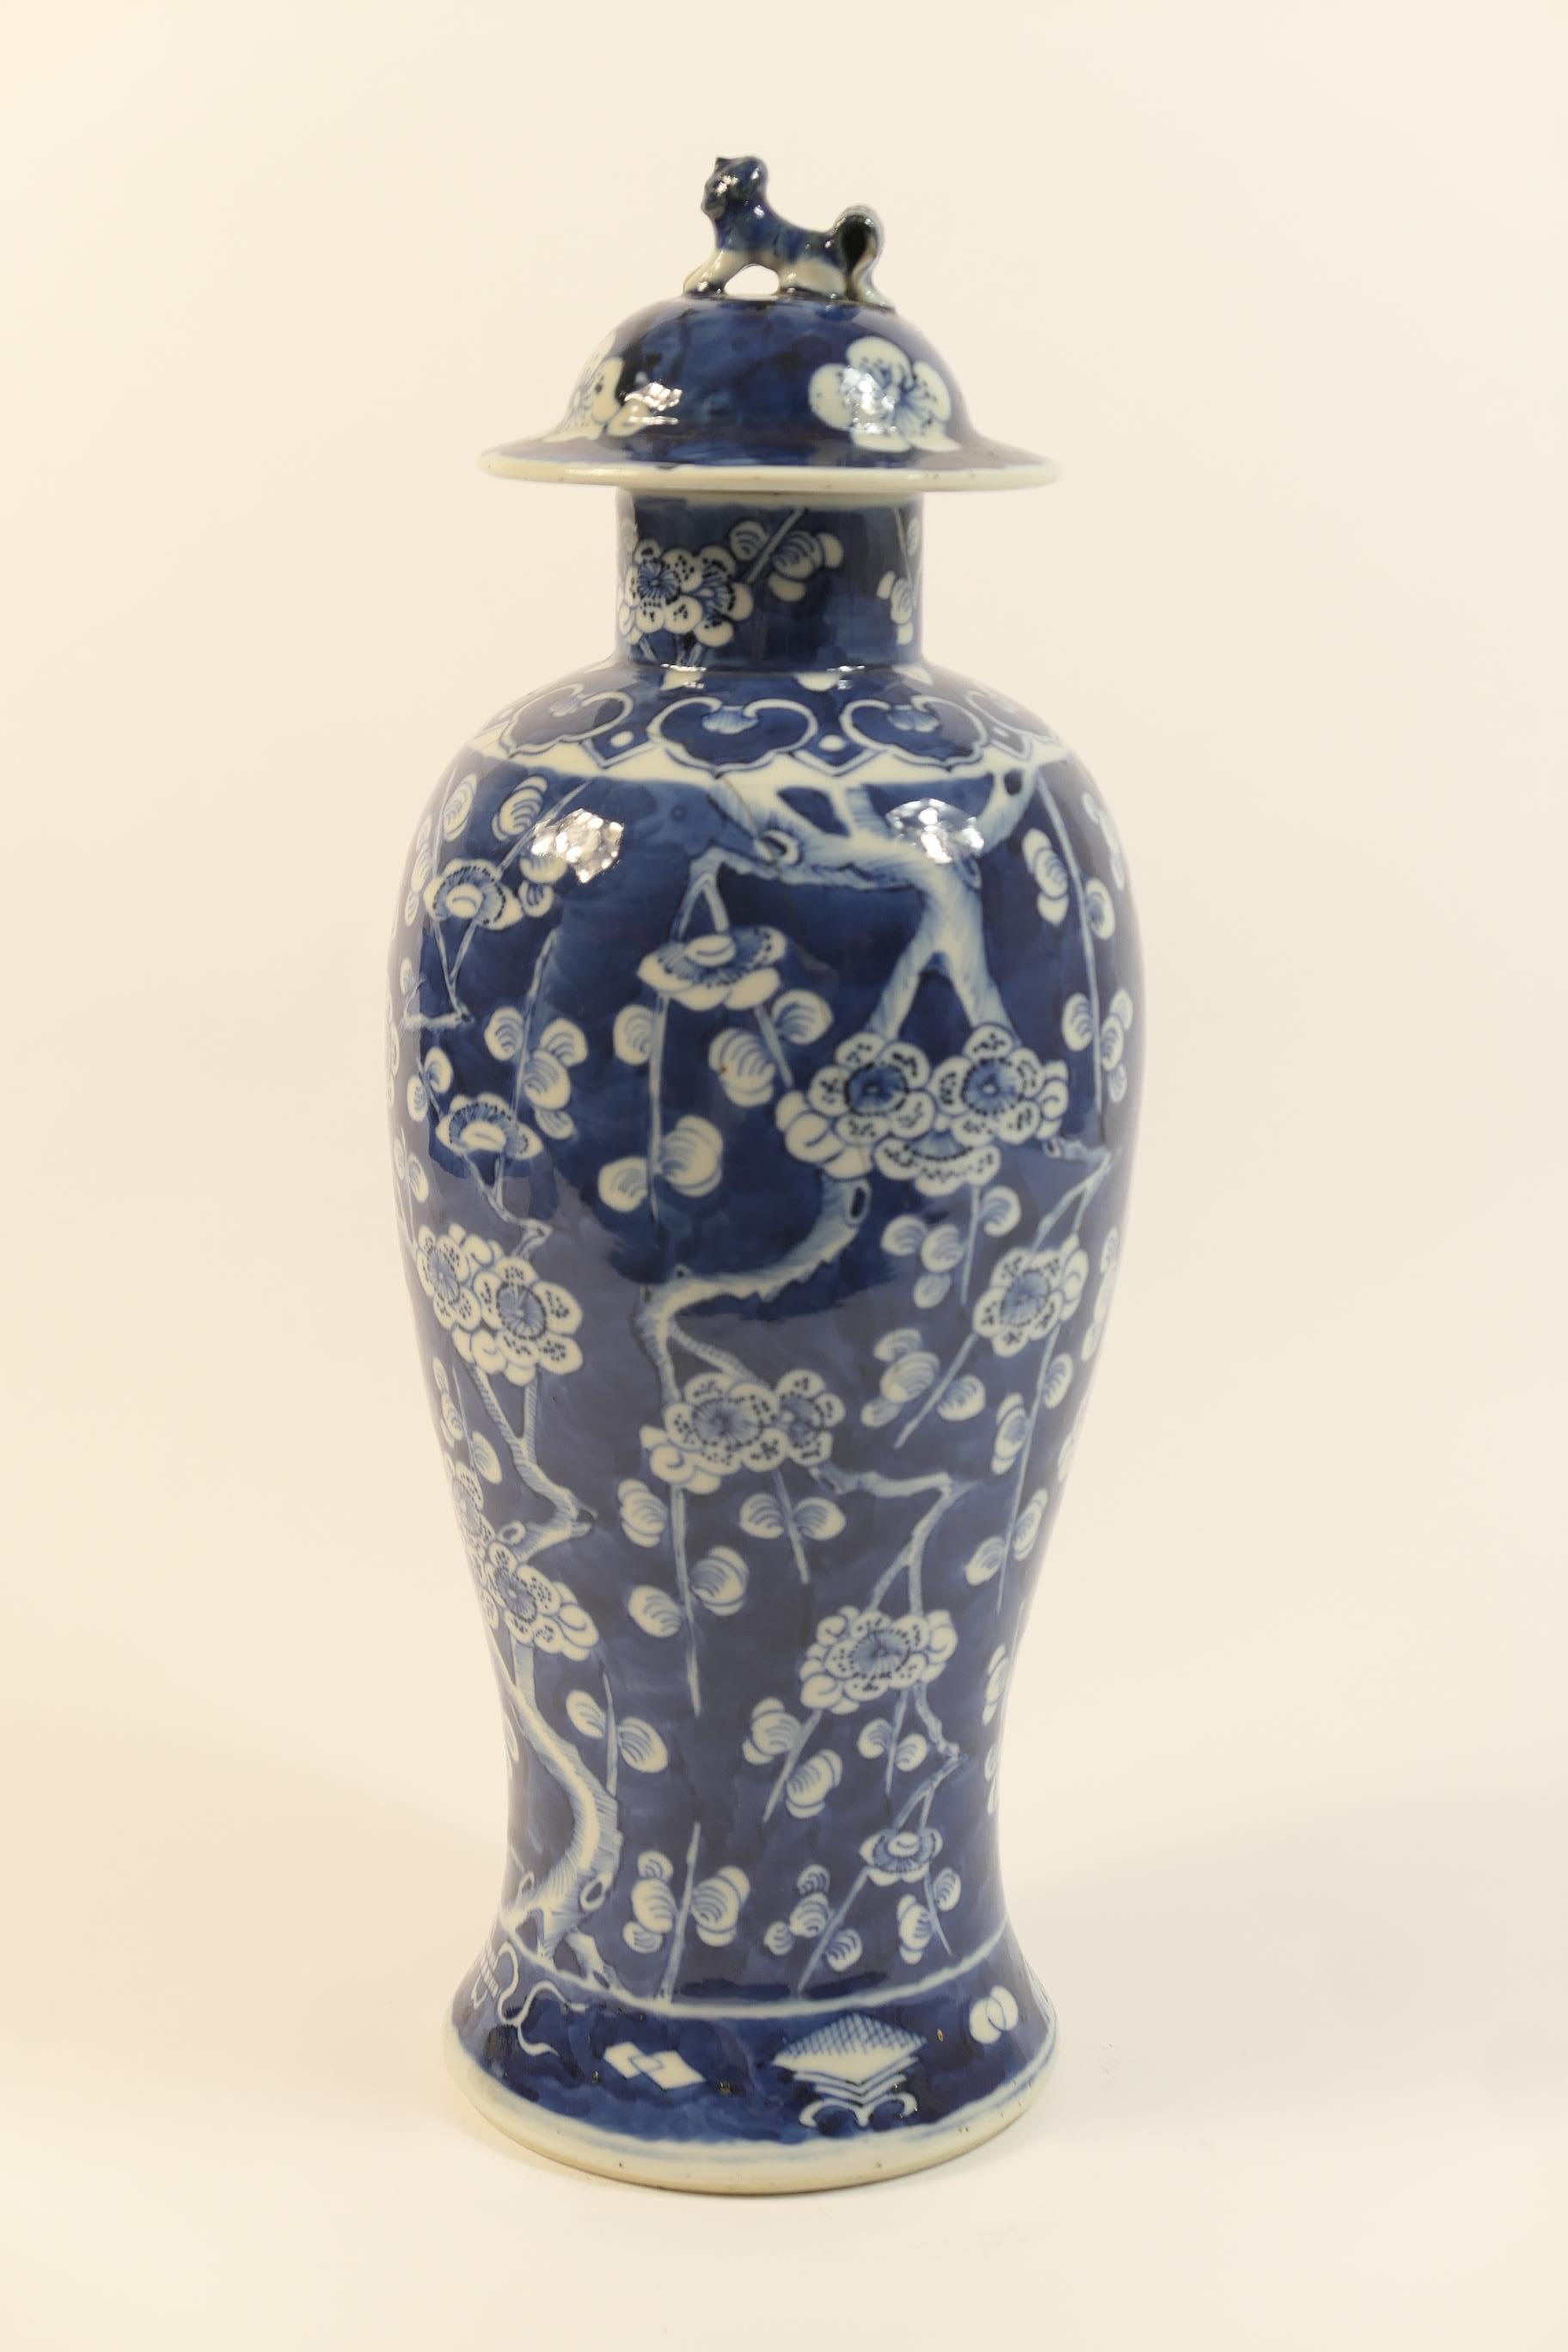 Lot 9 - Chinese blue and white prunus pattern covered vase, late 19th Century, slender ovoid form with domed